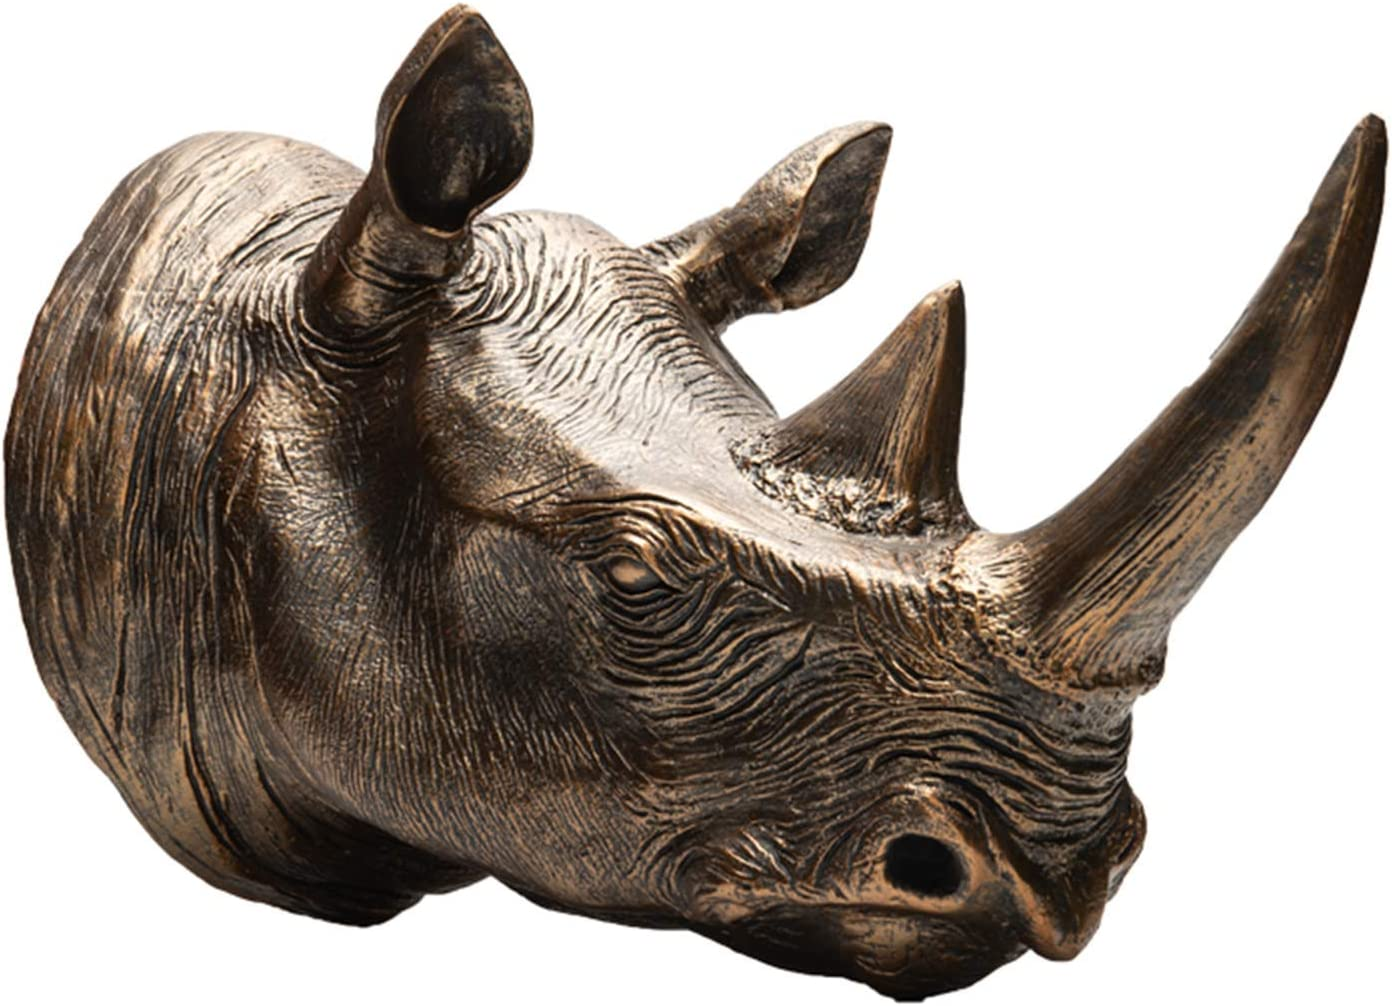 LUCKFY Faux Taxidermy Resin Rhino Head in Animal Head Wall Decor Deer Head Wall Mount Sculpture Figurines Crafts Home Decor Ornaments Gift